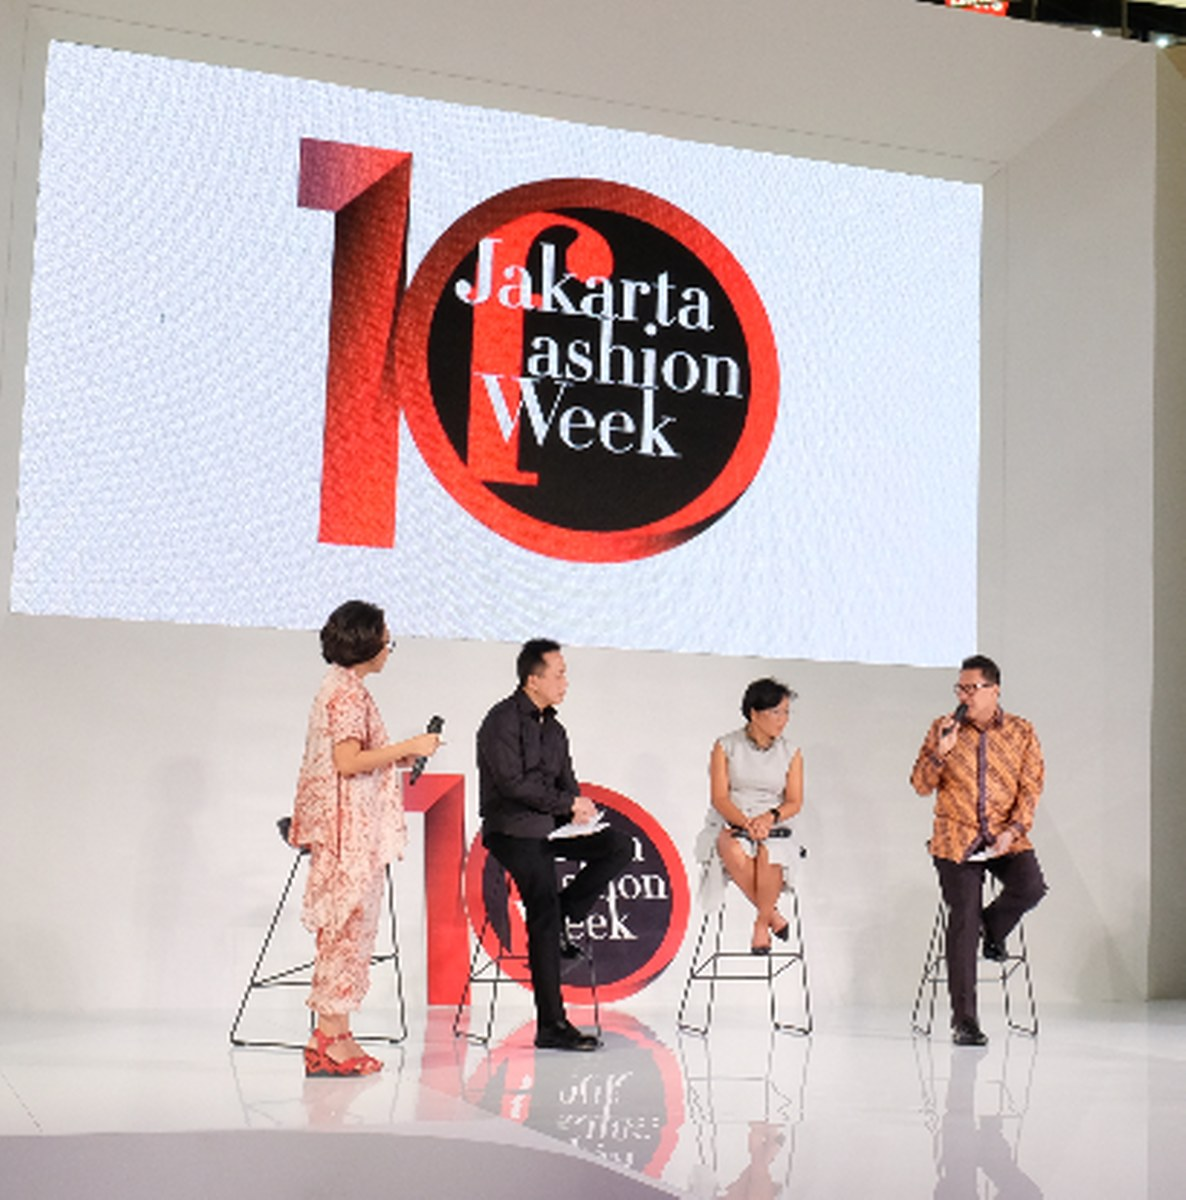 JAKARTA FASHION WEEK 2018 OFFICIALLY START IN SENAYAN CITY